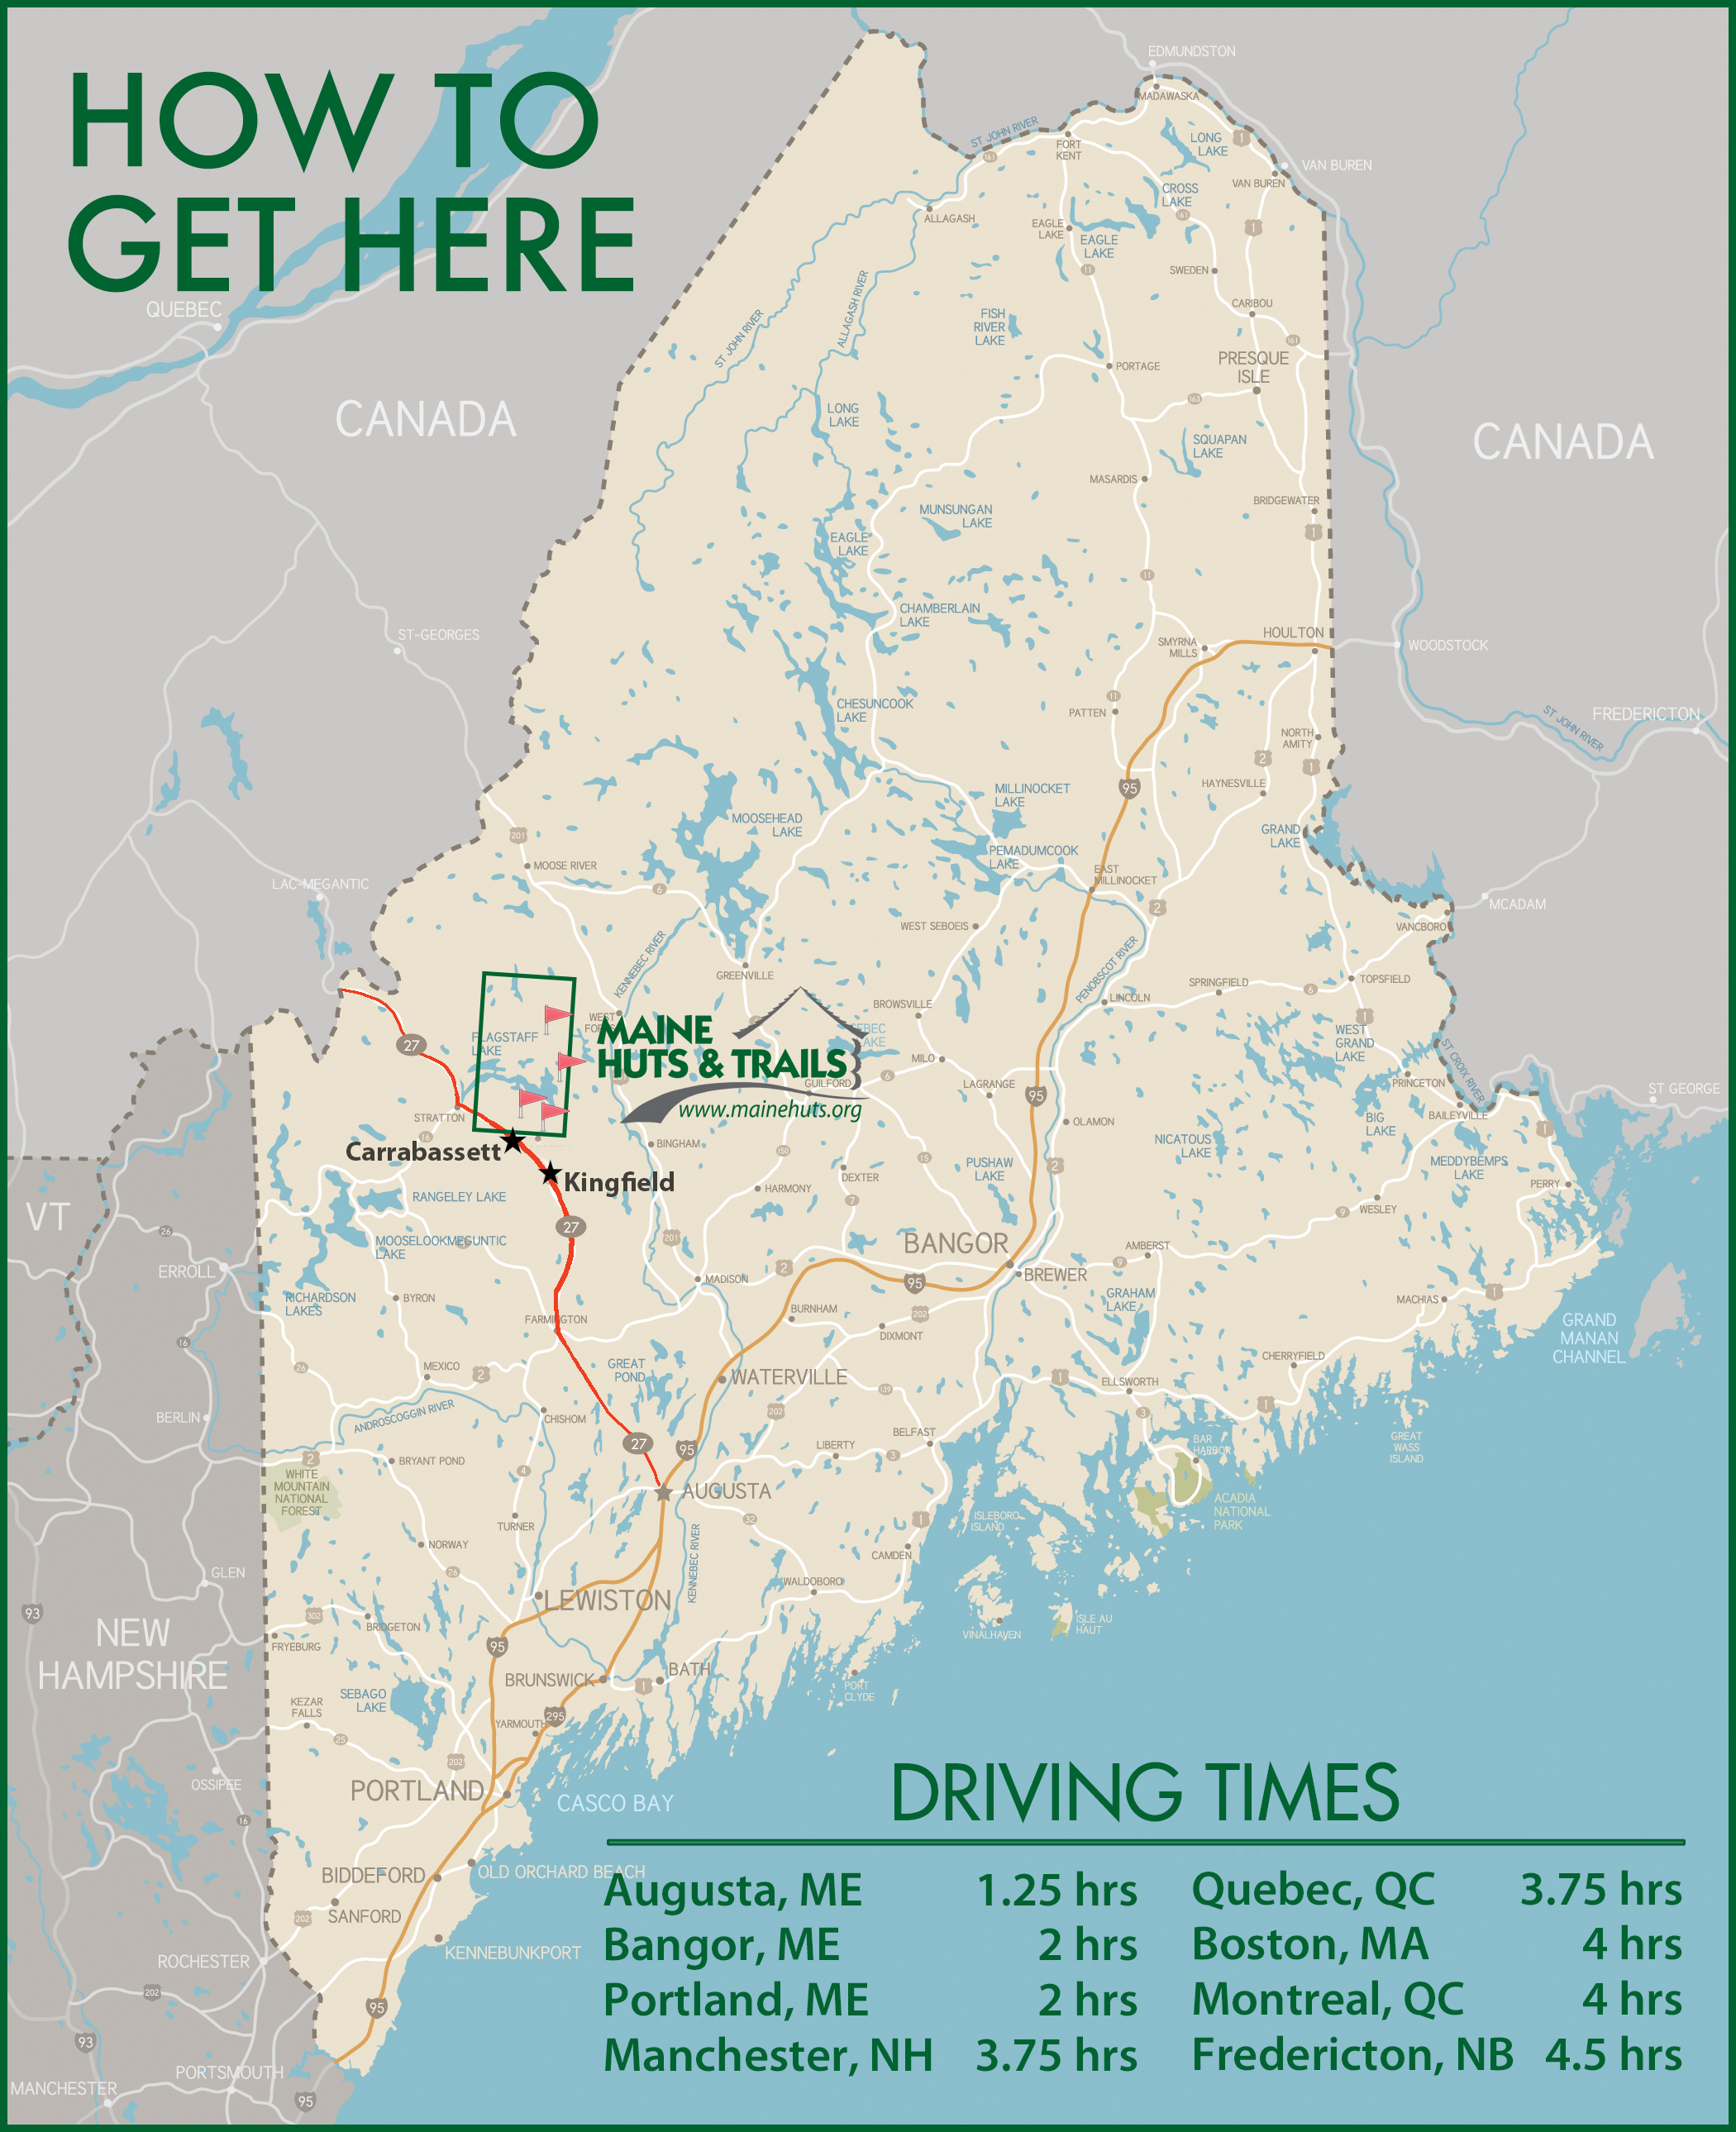 How to get to Maine Huts & Trails